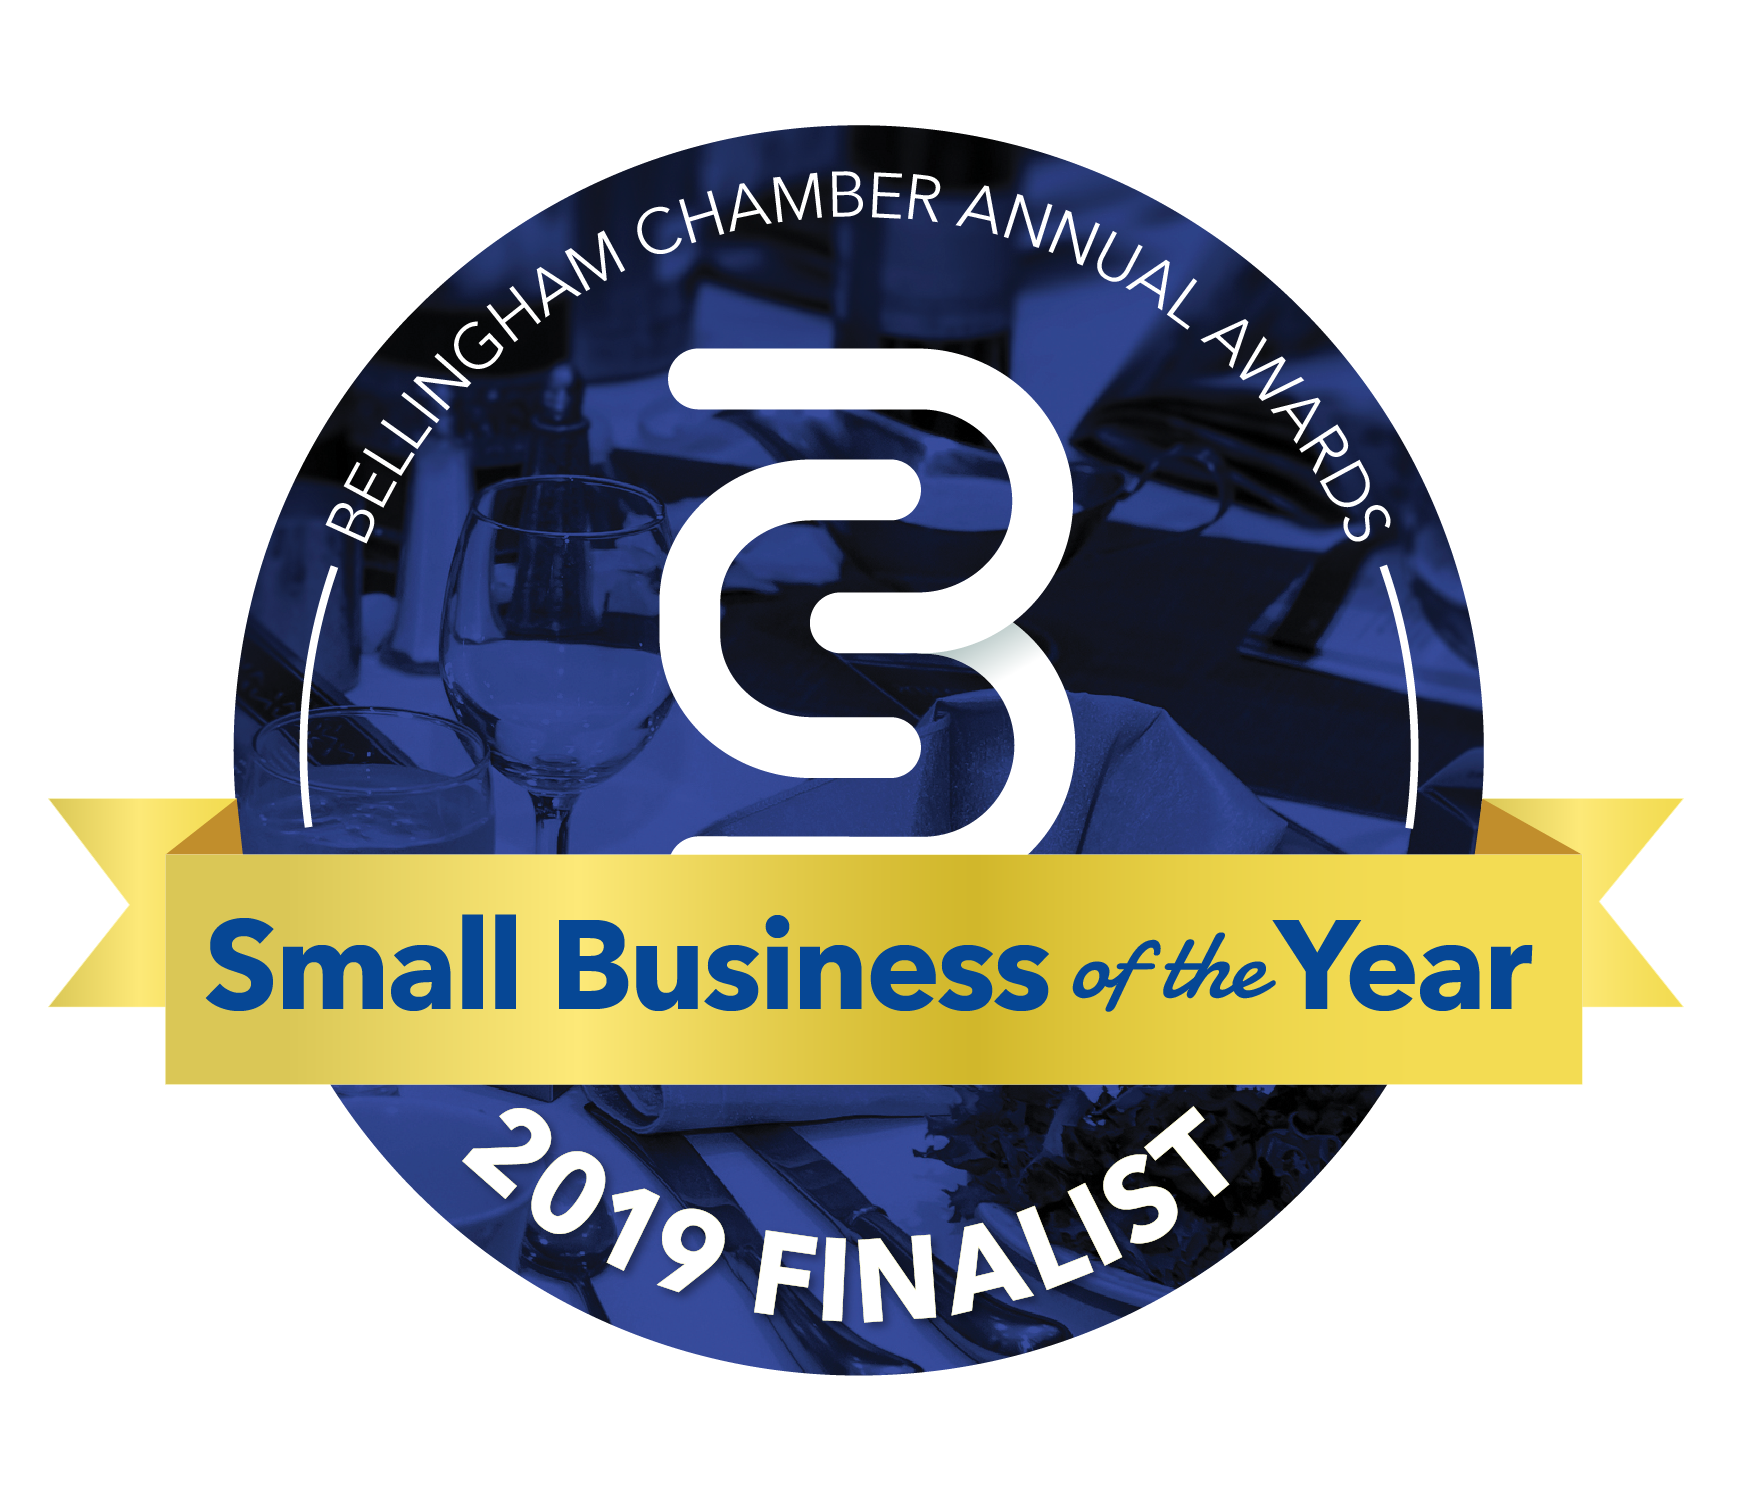 BCC-FinalistBadge-v2-Small Business-2019.png